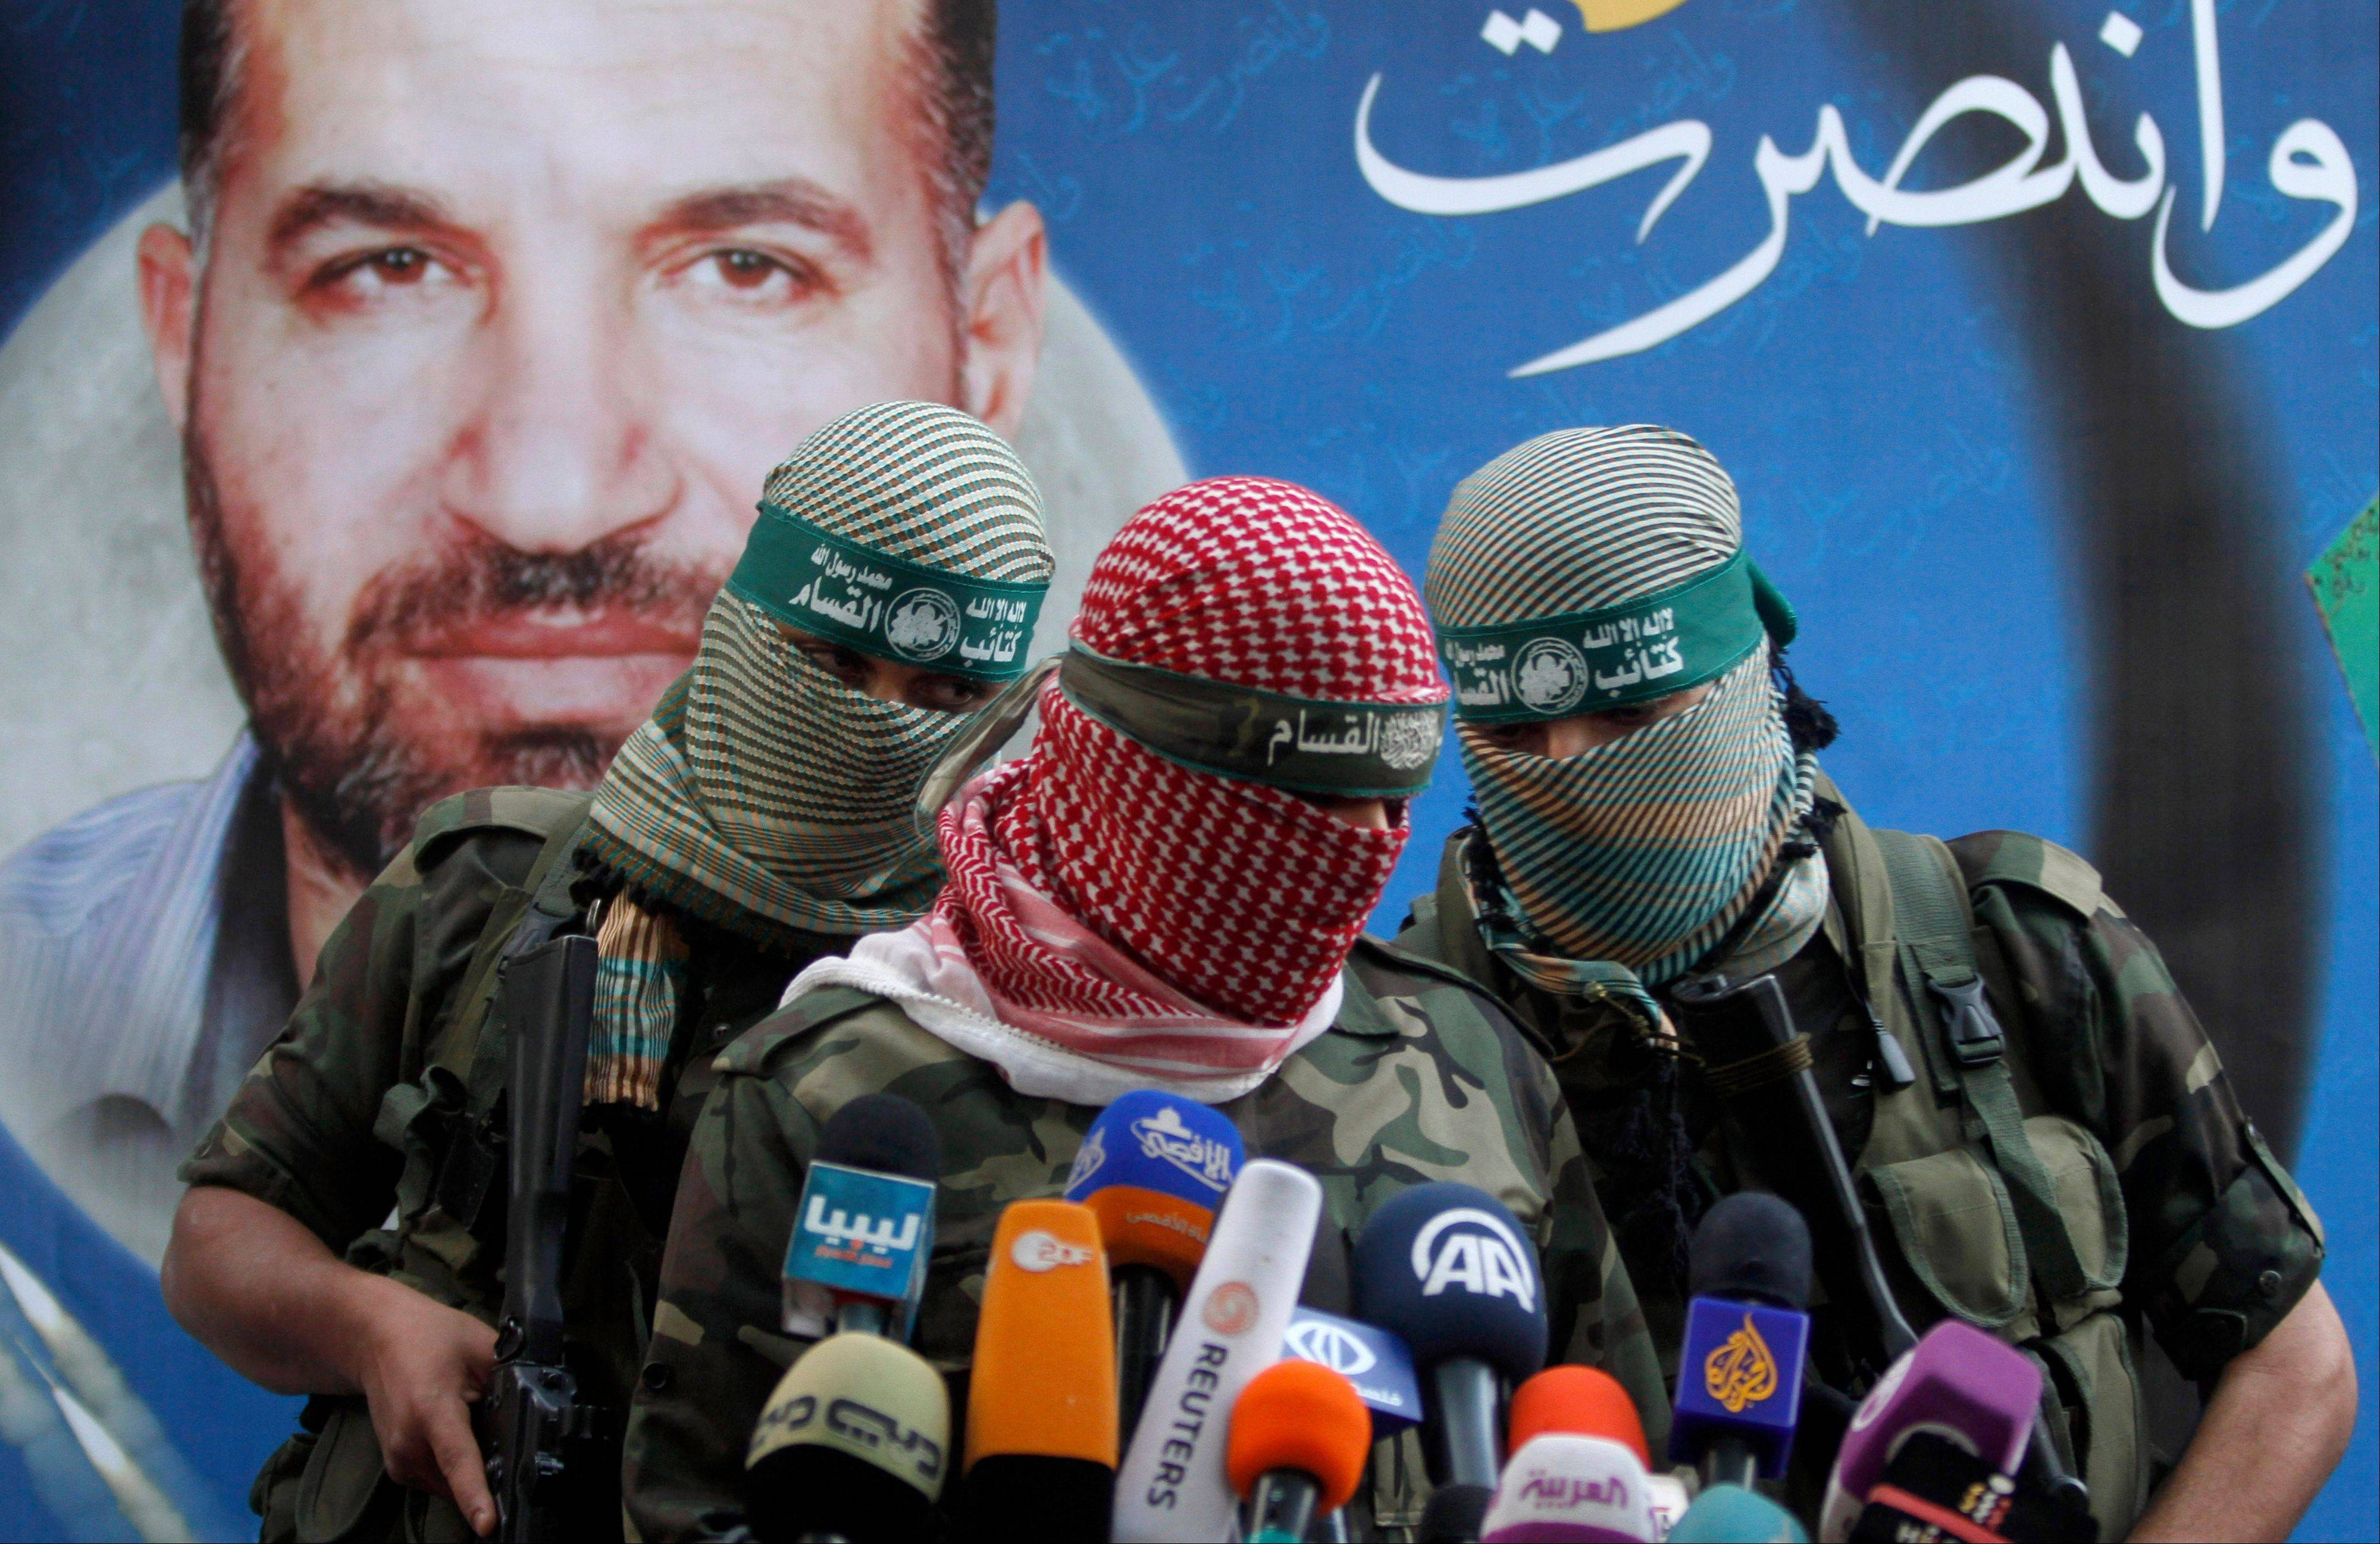 A Hamas militant talks during a press conference in Gaza City on Thursday. The poster in